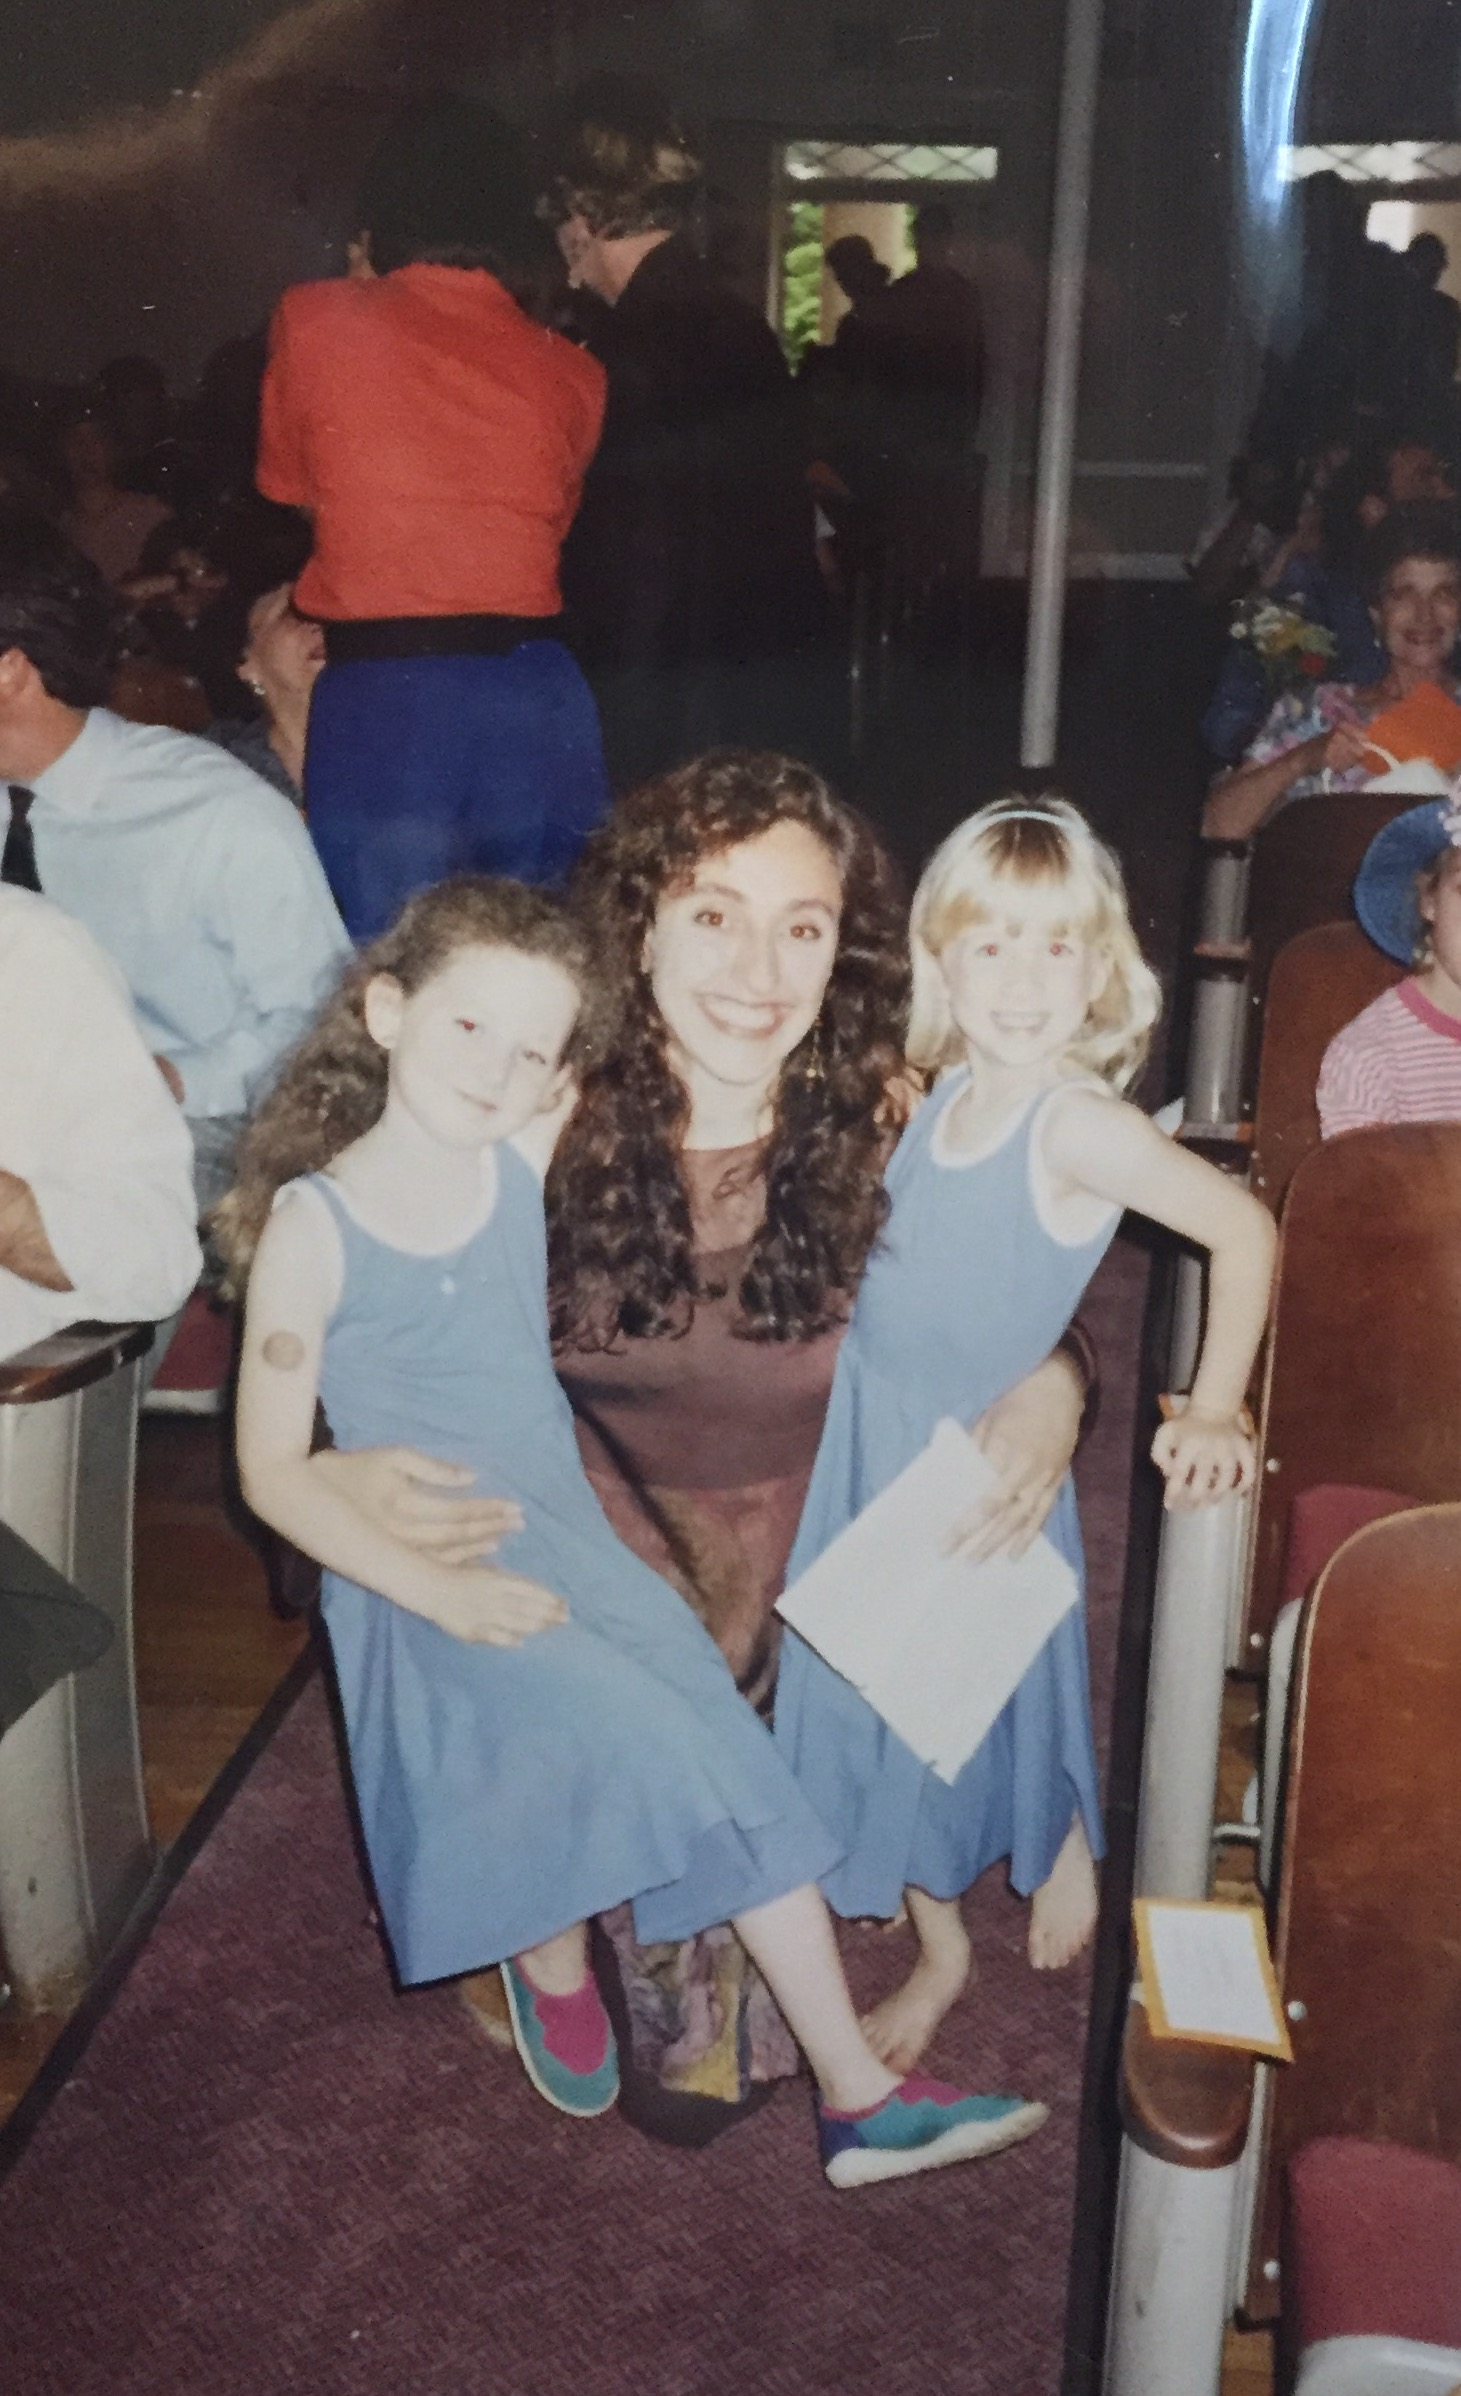 JESSI (RIGHT) WITH HER DANCE TEACHER MAGGIE BENNETT DURING ARTS FEST, 1995. SHE PROUDLY DISPLAYS HER DRESS IN THE BOTTOM RIGHT IMAGE.